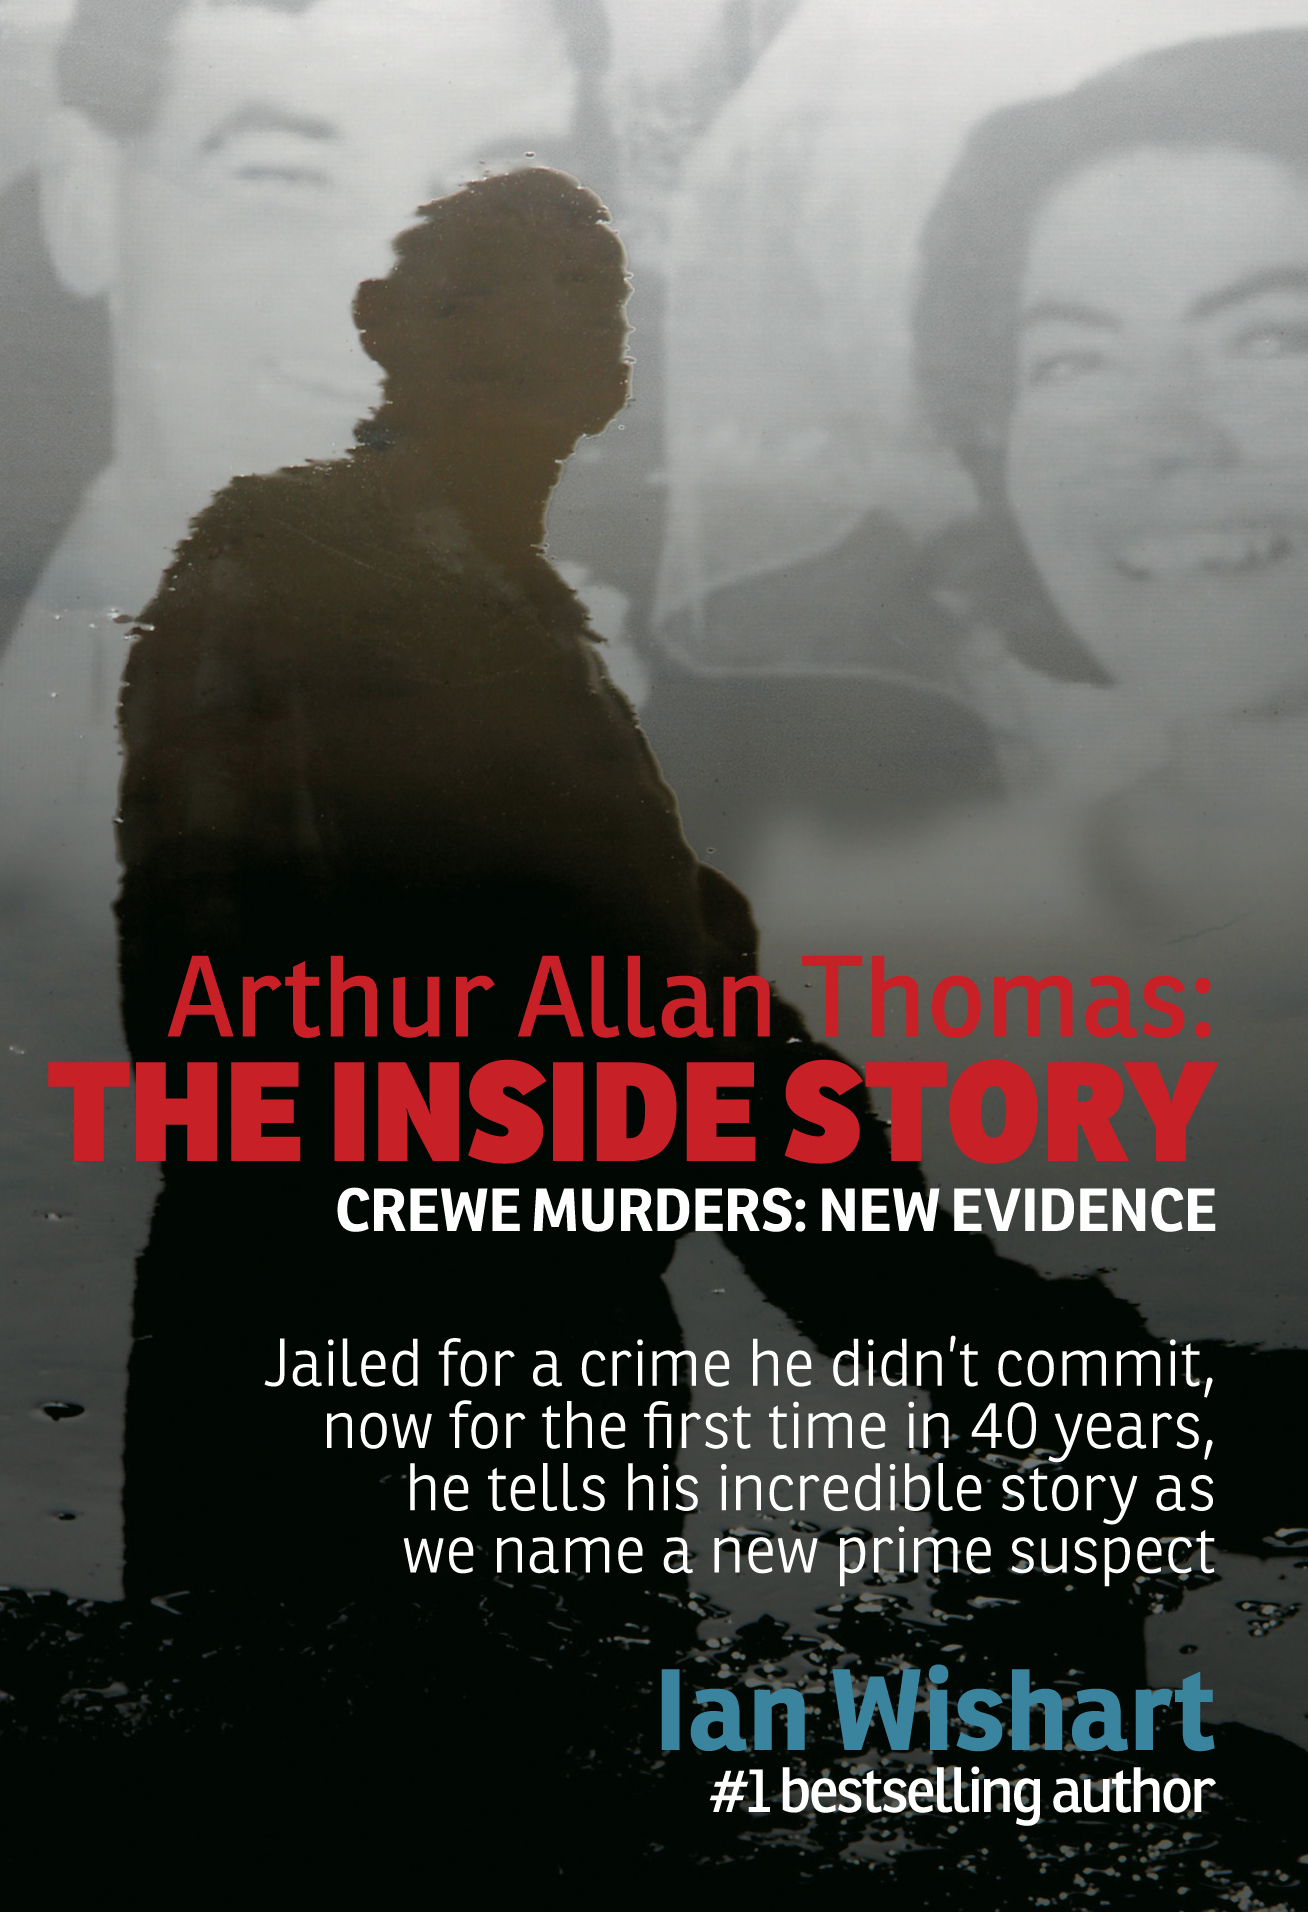 Arthur Allan Thomas: The Inside Story By: Ian Wishart